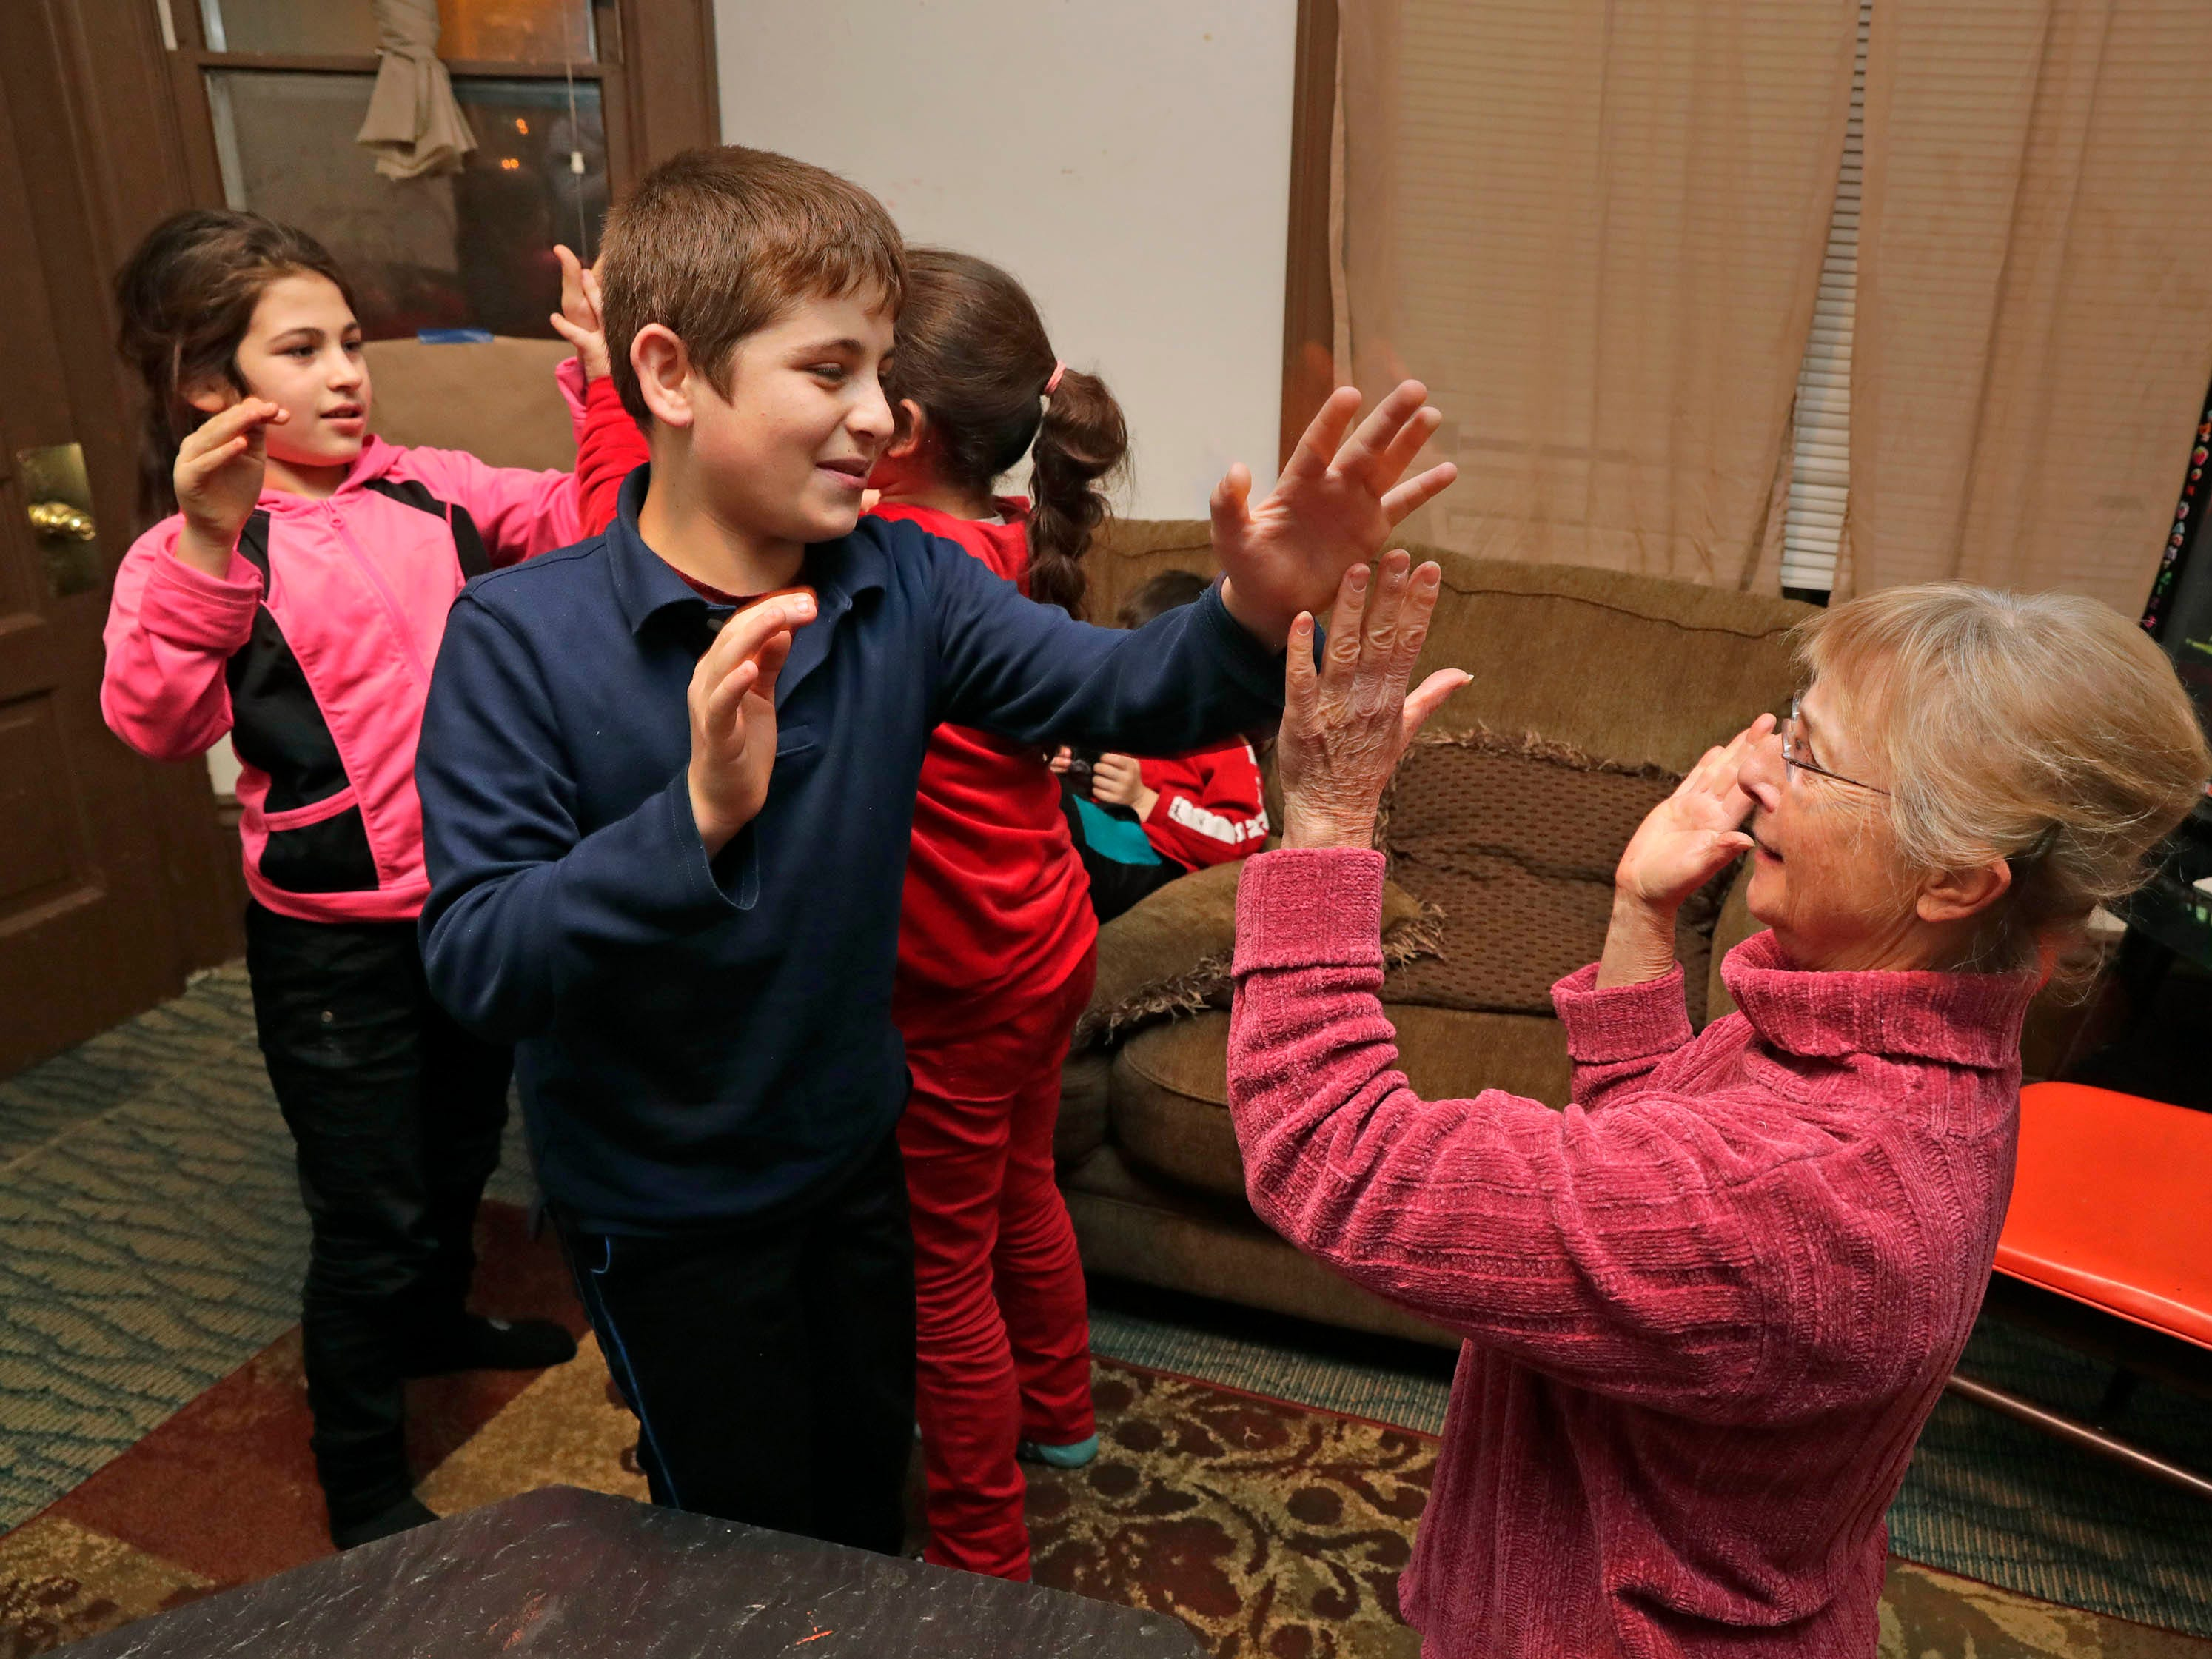 Carol Johnstone and Nizar Hamdoun, 11, play a clapping game at the Hamdoun family home on Milwaukee's south side.